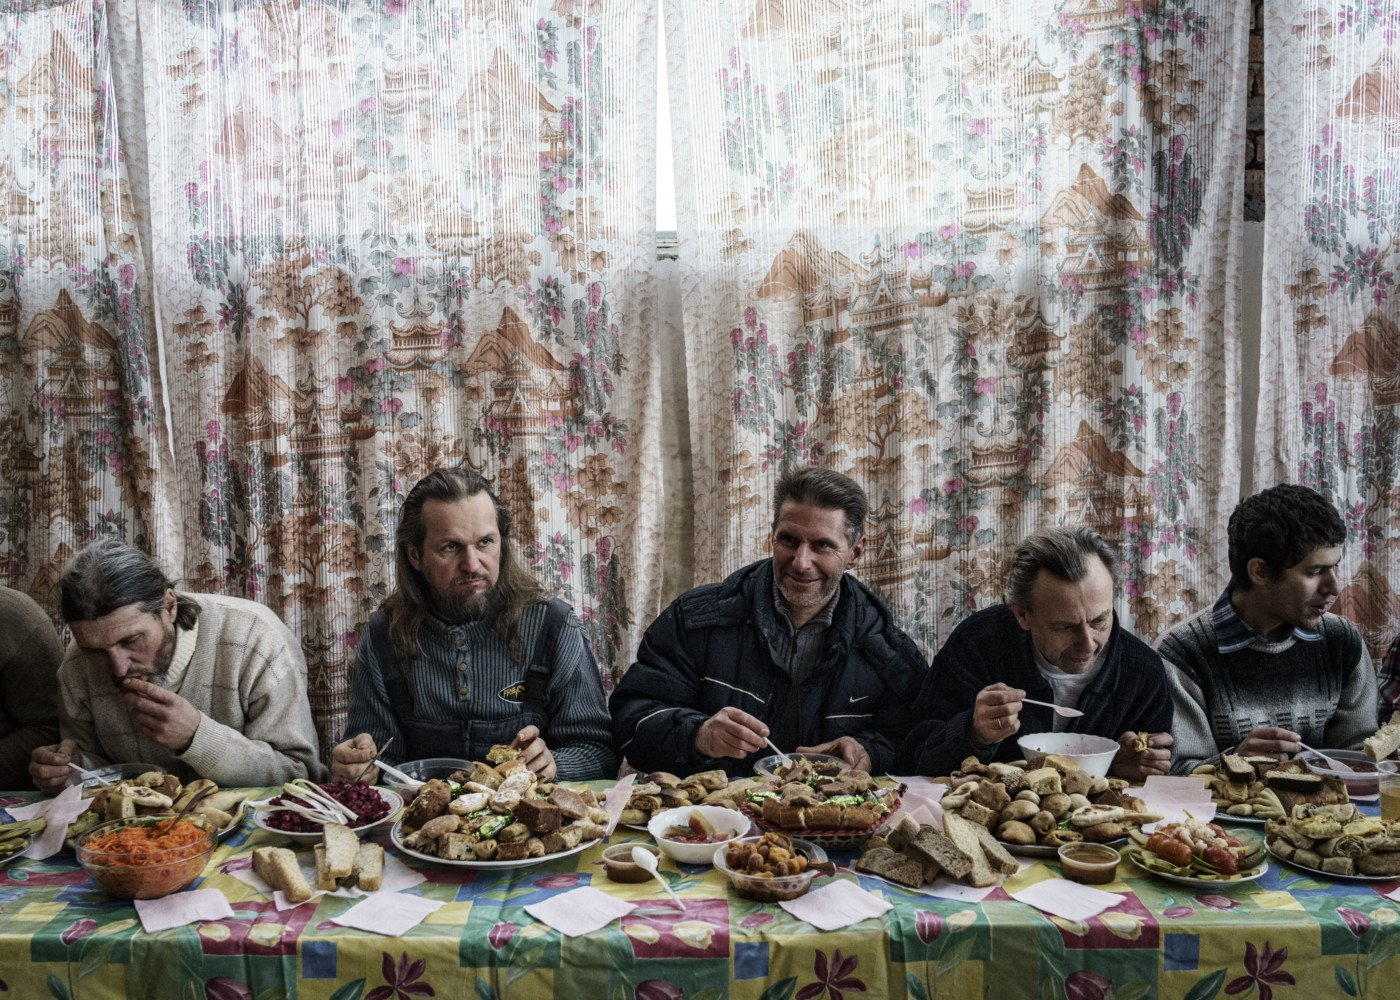 Disciples of Vissarion at a Communal lunch, Russia, 2015